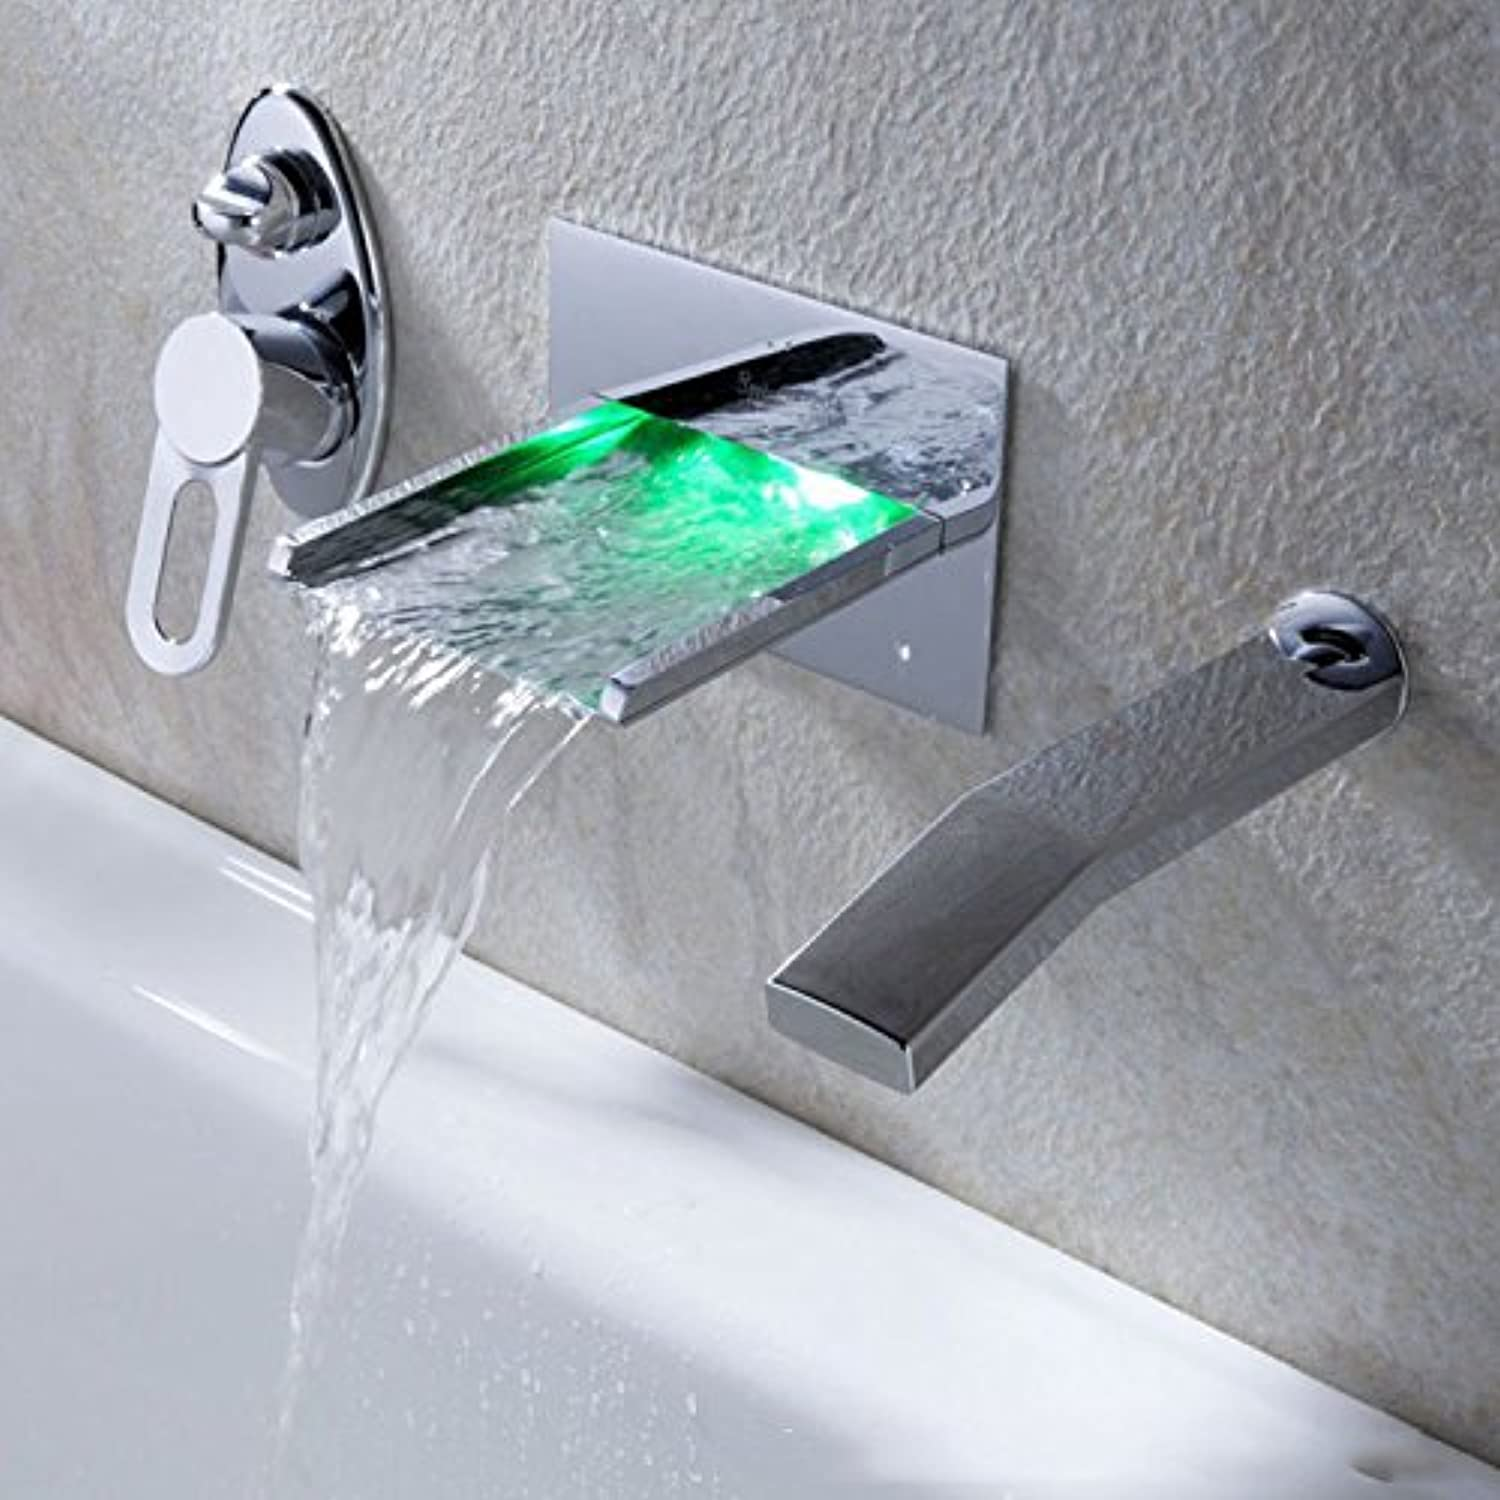 ZHFCBasin faucet LED temperature control all copper basin hot and cold water tap